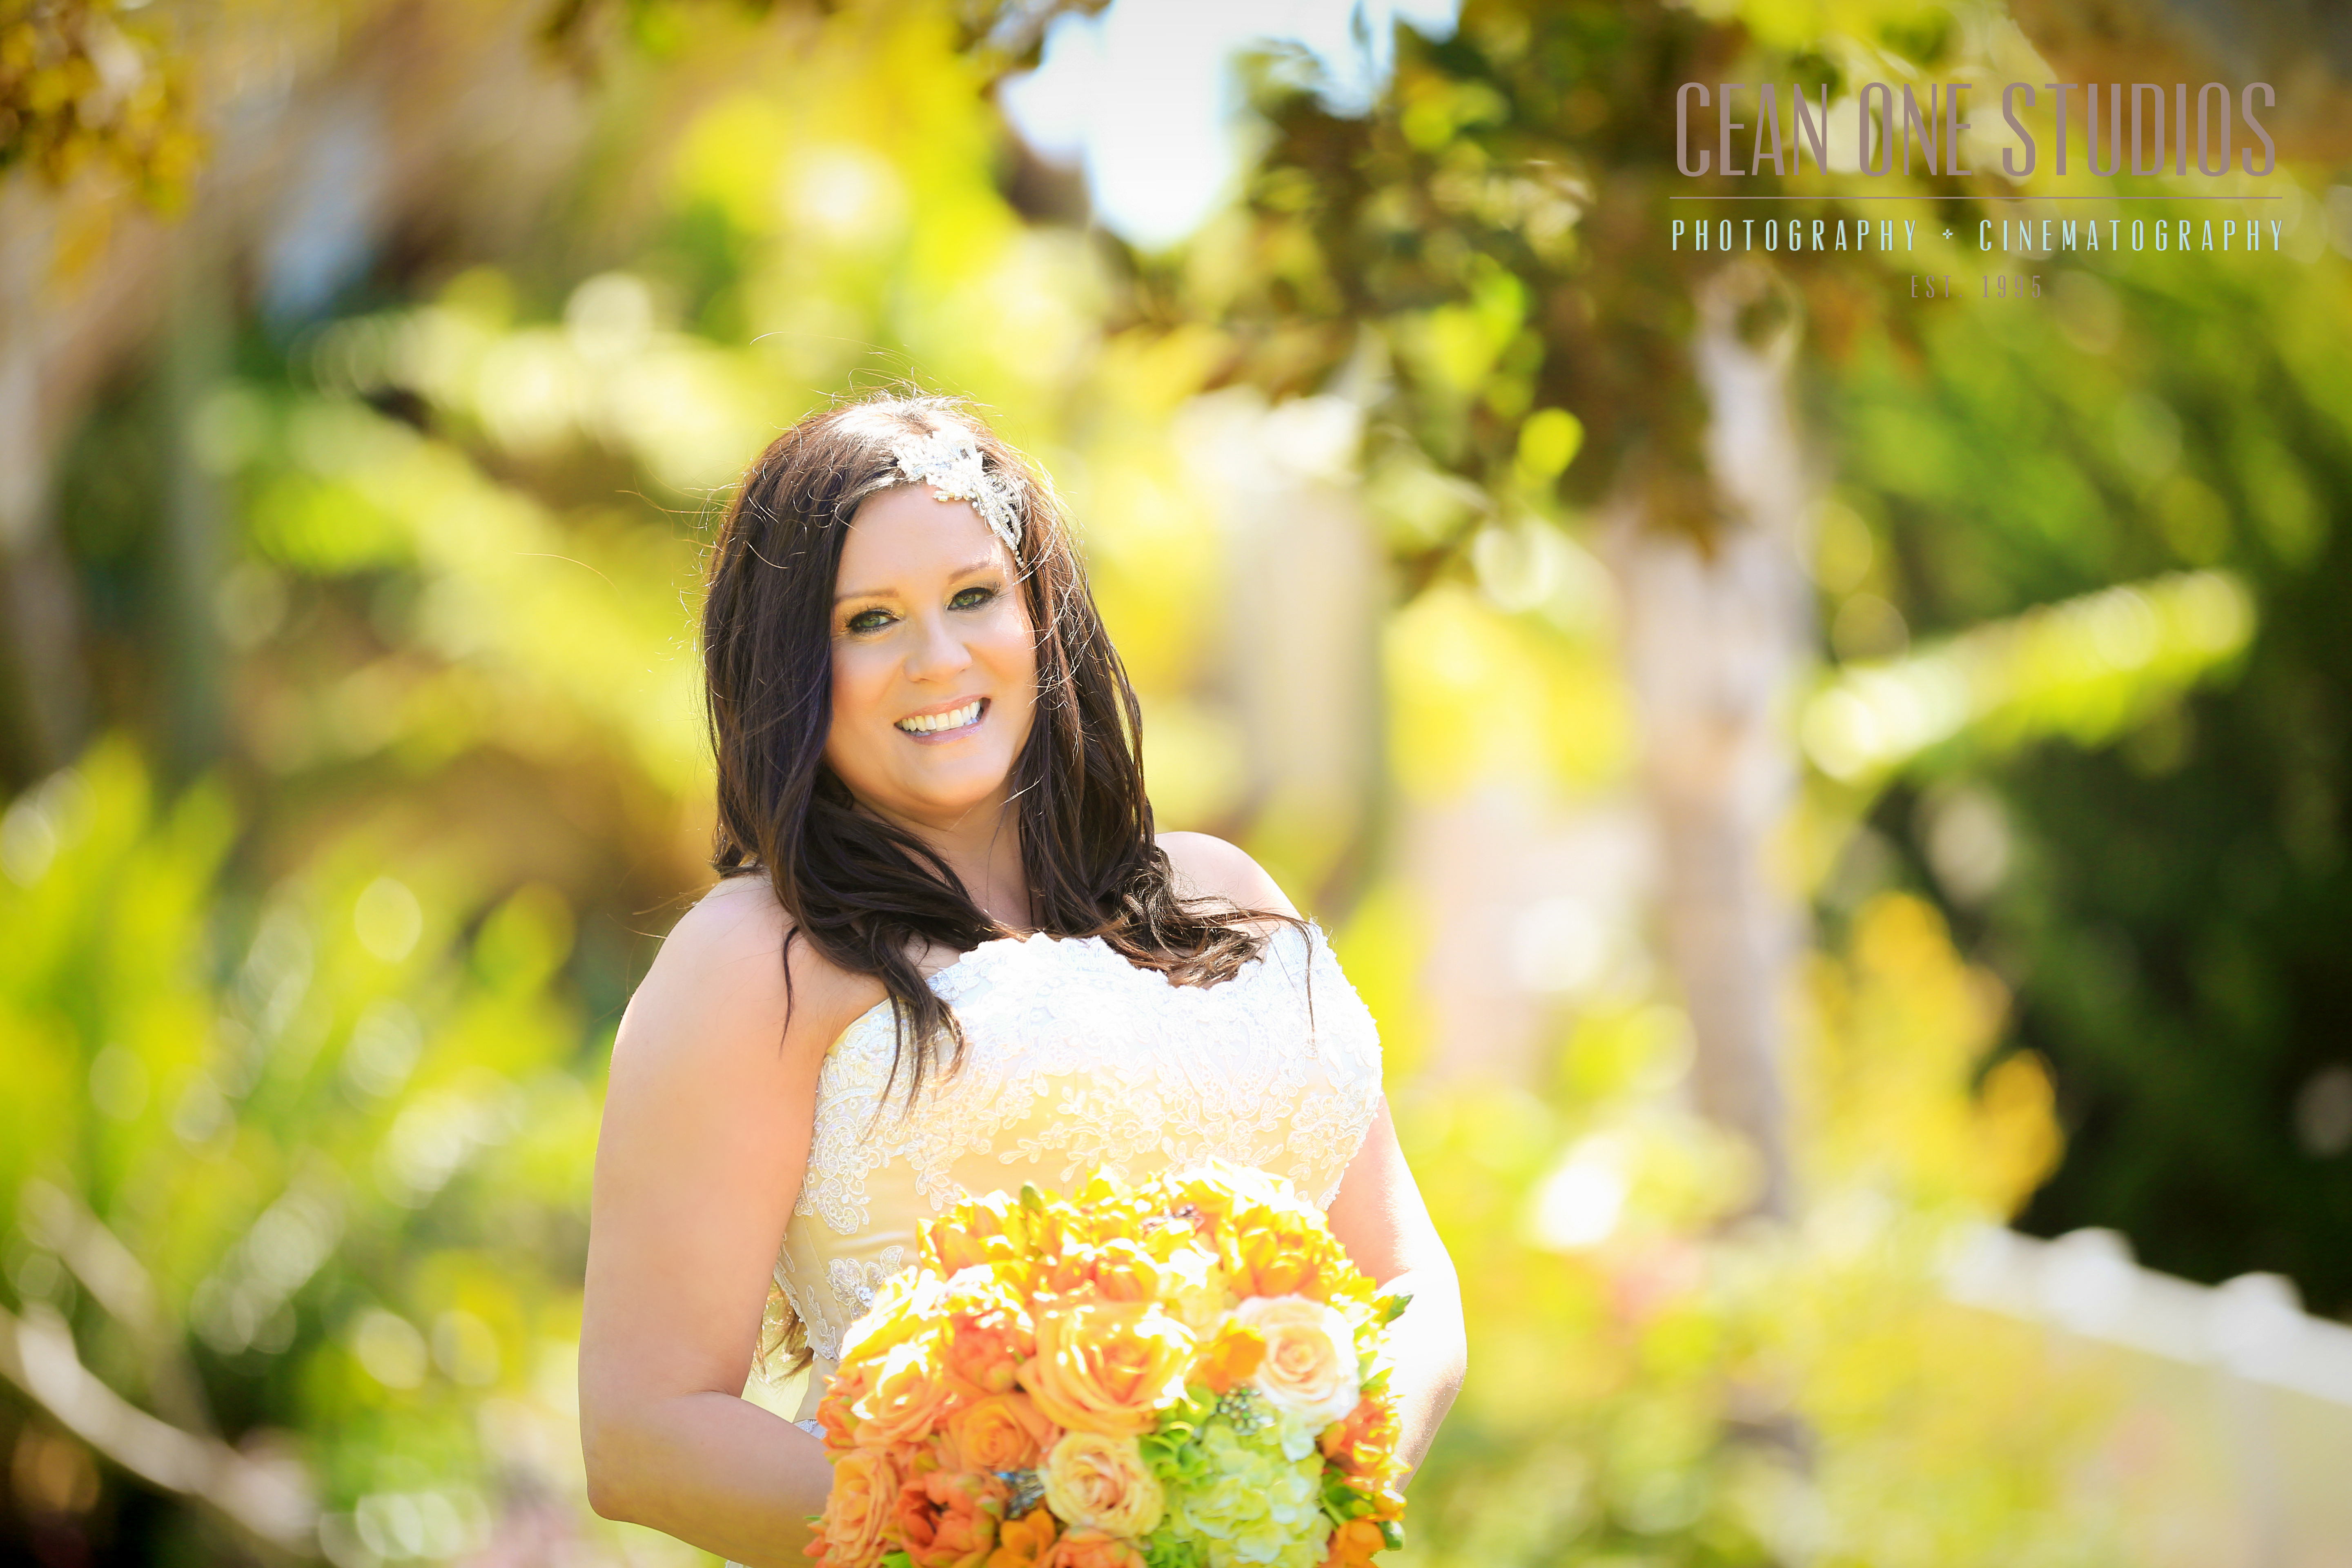 Bride smiling at camera | Cean One Studios | San Diego Wedding Photographer